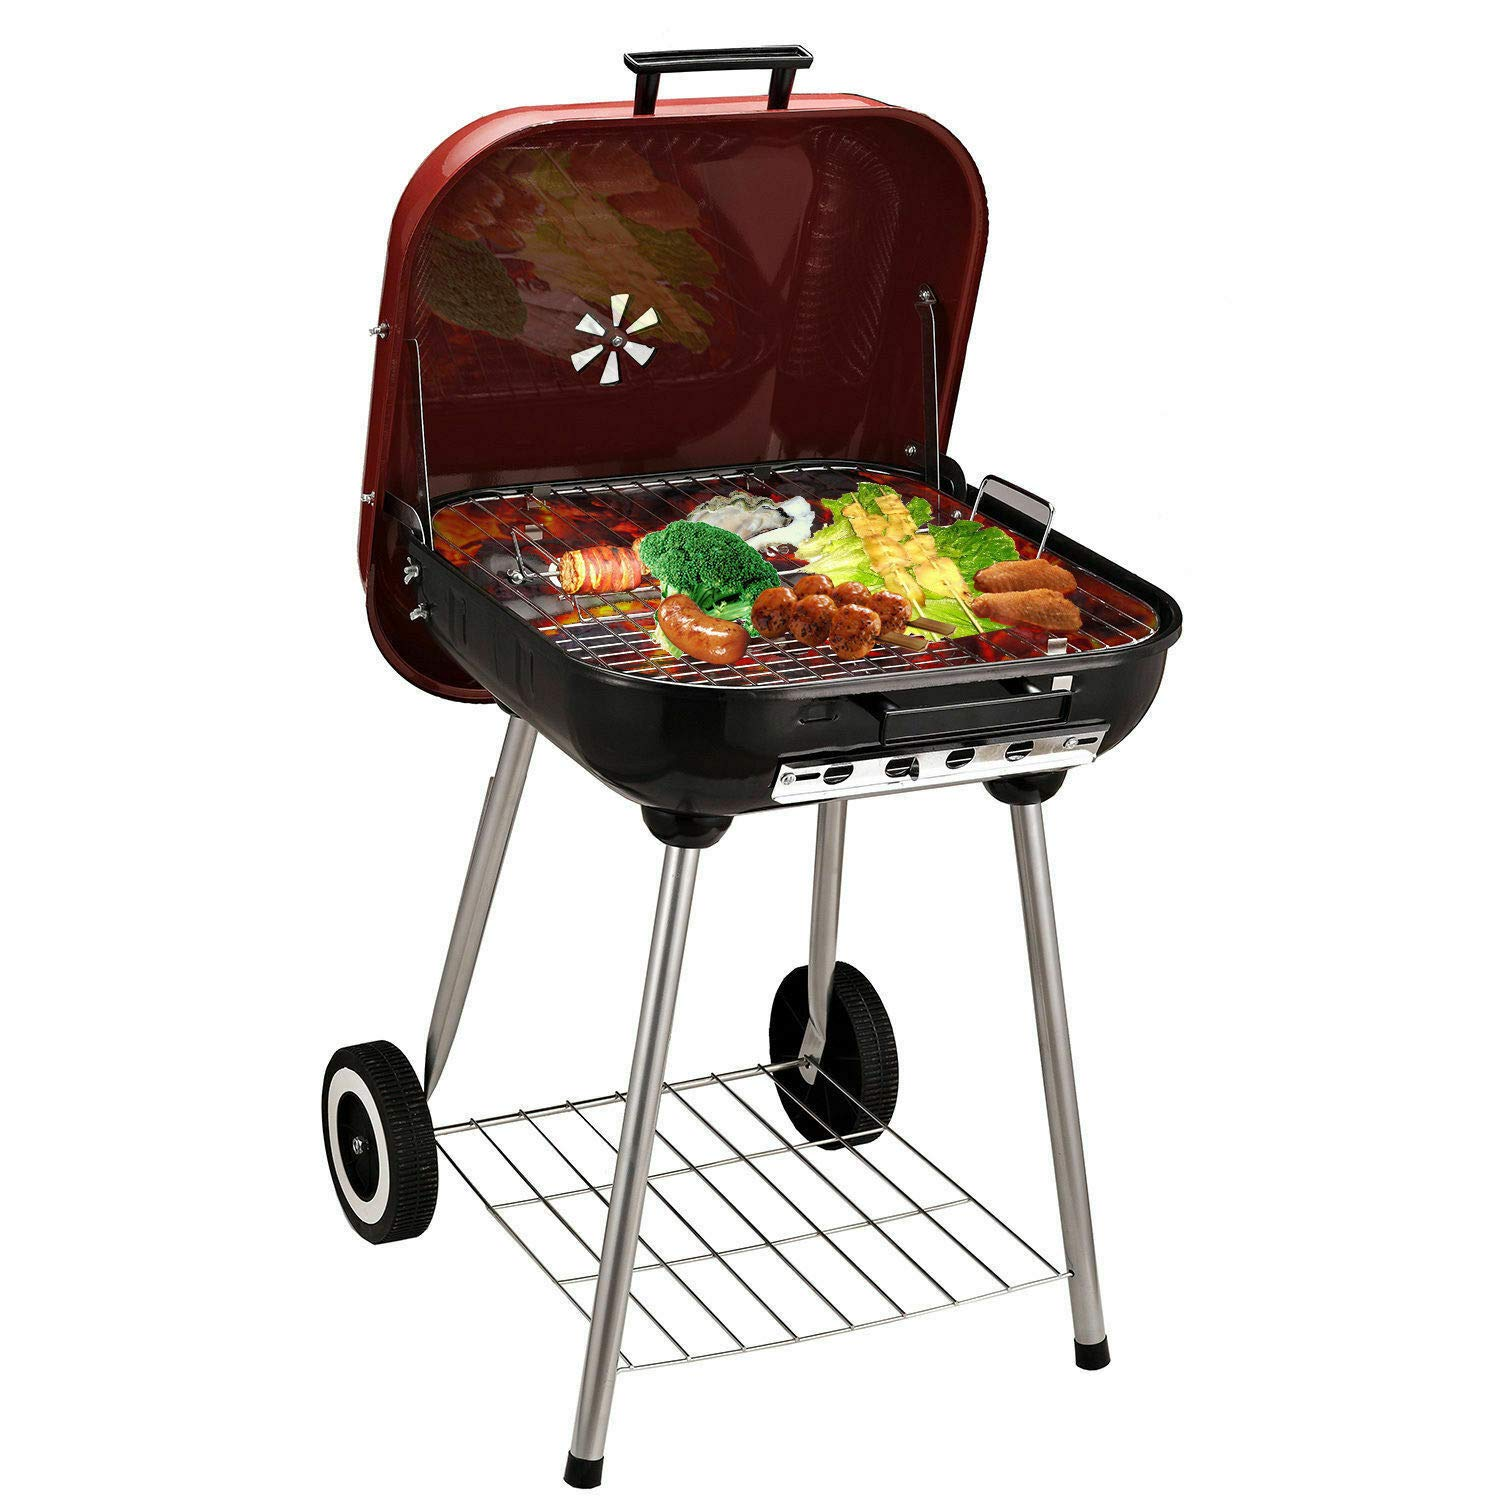 Barbecue Charcoal Grill Pot Generous Cooking GrillingPortable Outdoor 22 Inch